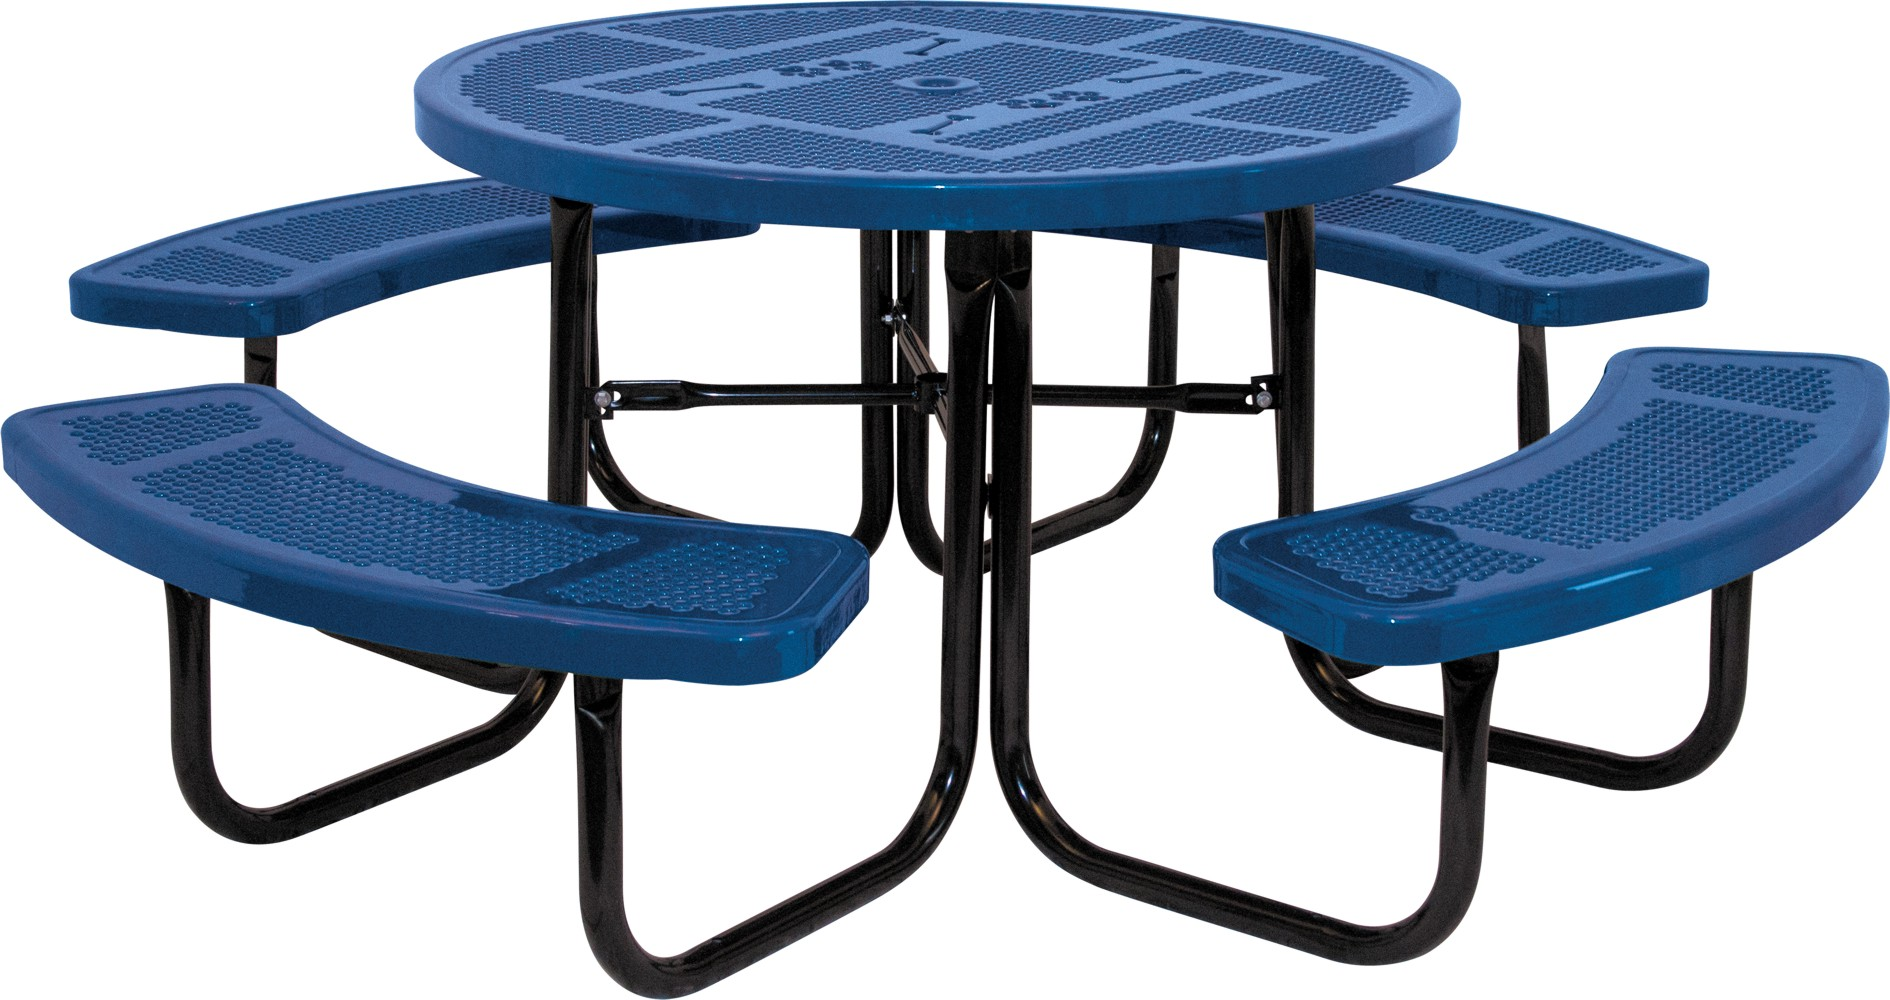 Chow Hound Table - Dog Park Equipment - American Parks Company